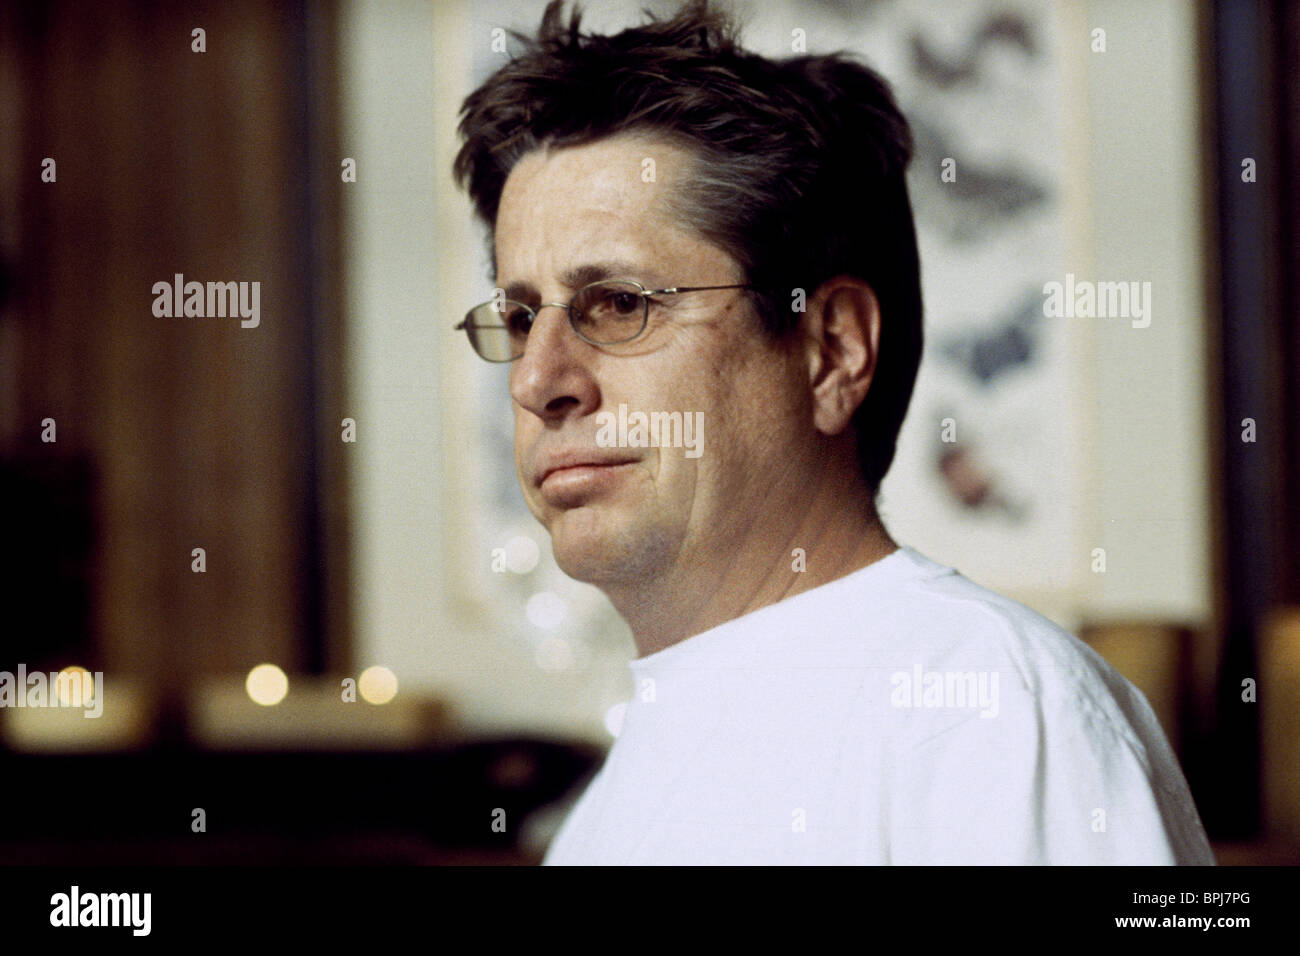 ANDY TENNANT SWEET HOME ALABAMA (2002 Stock Photo: 31134056 - Alamy